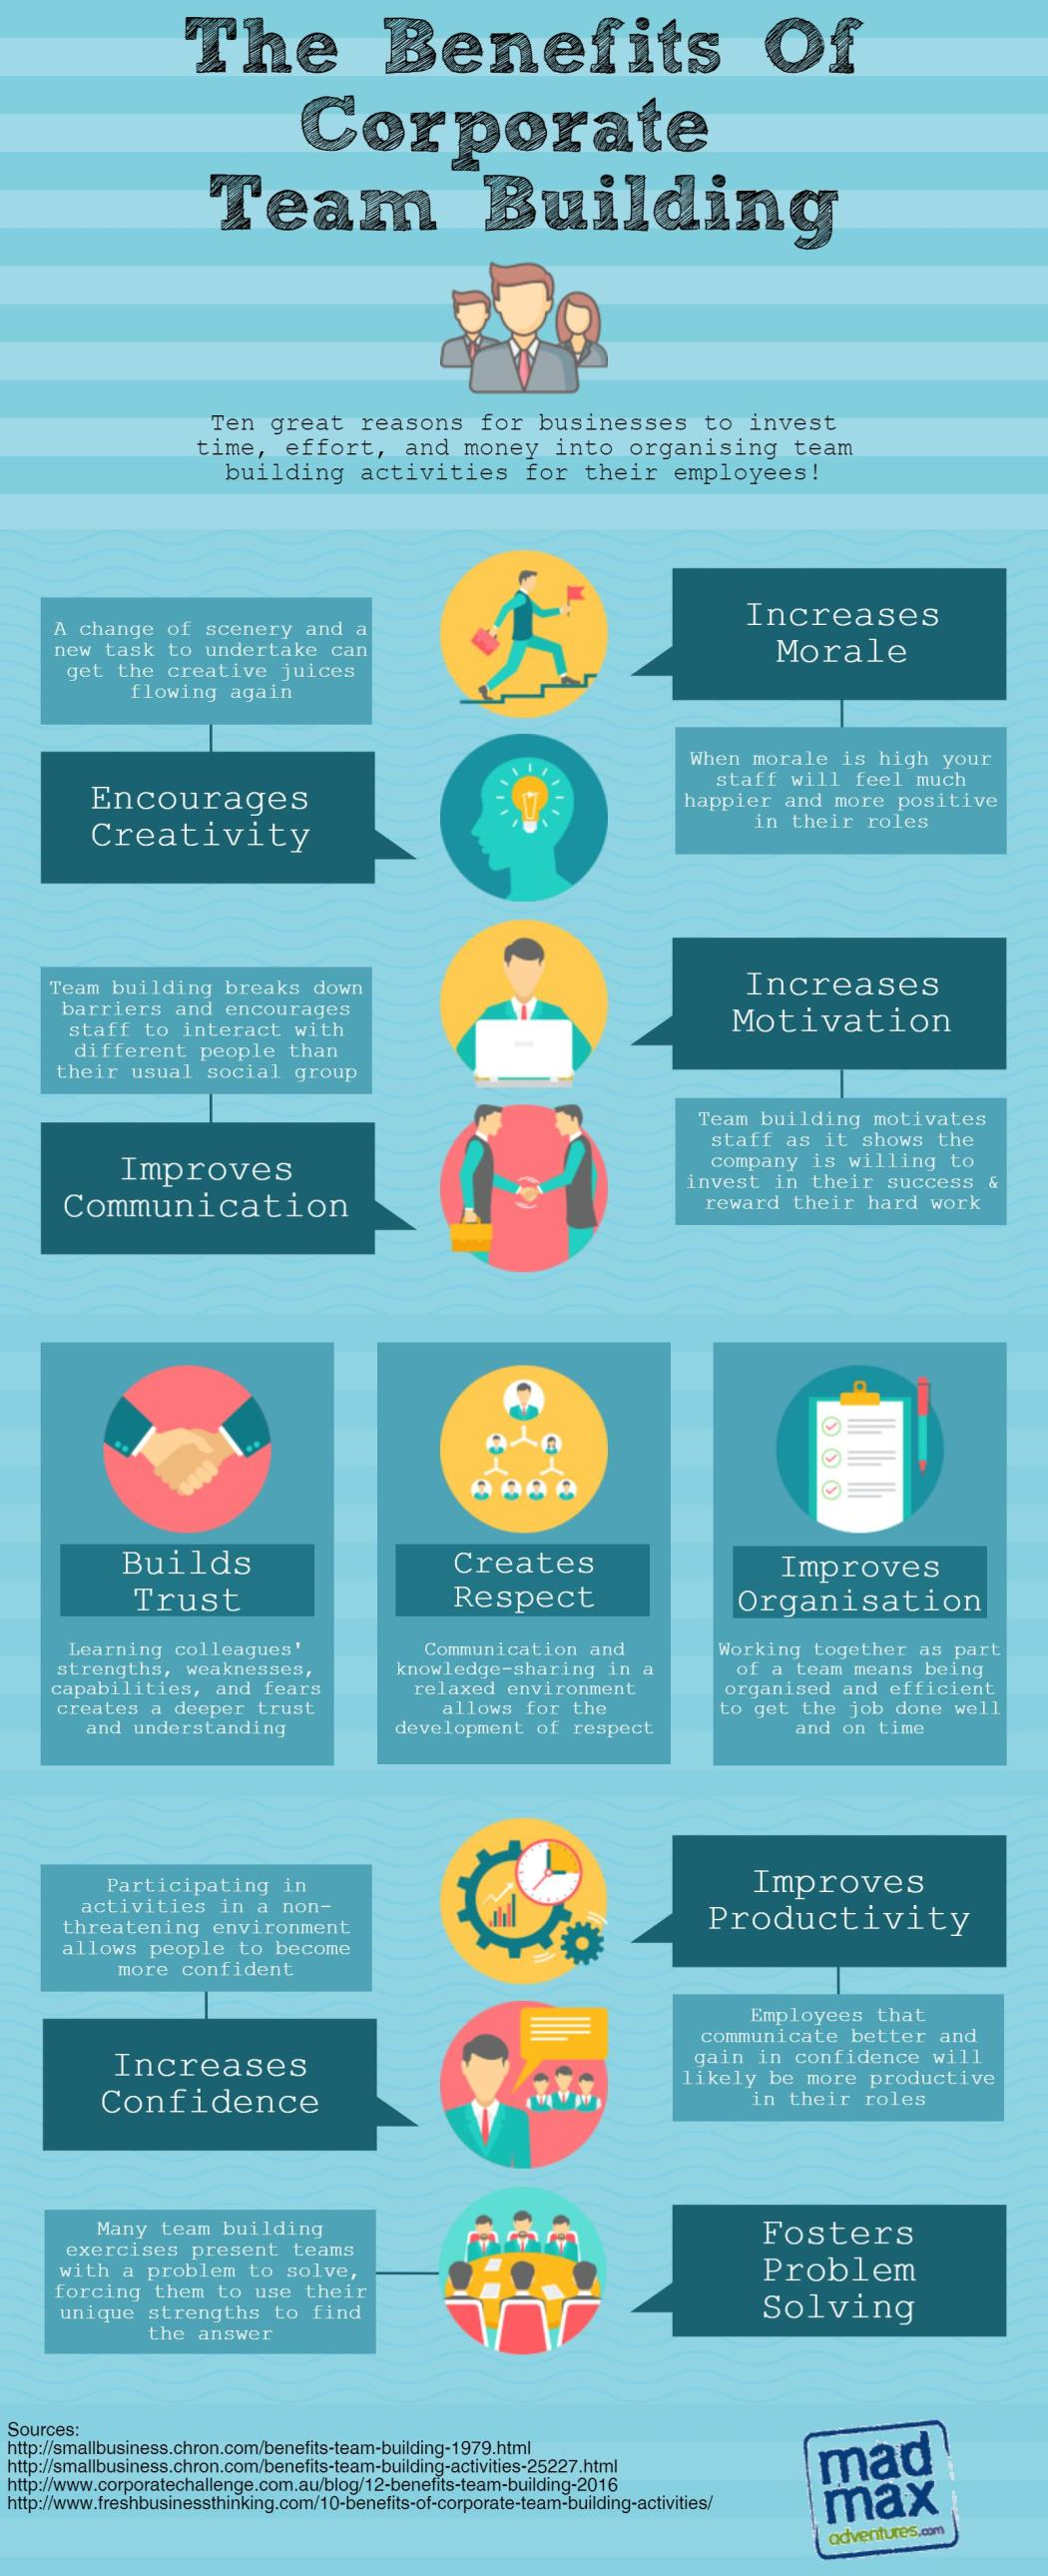 The Benefits Of Corporate Team Building